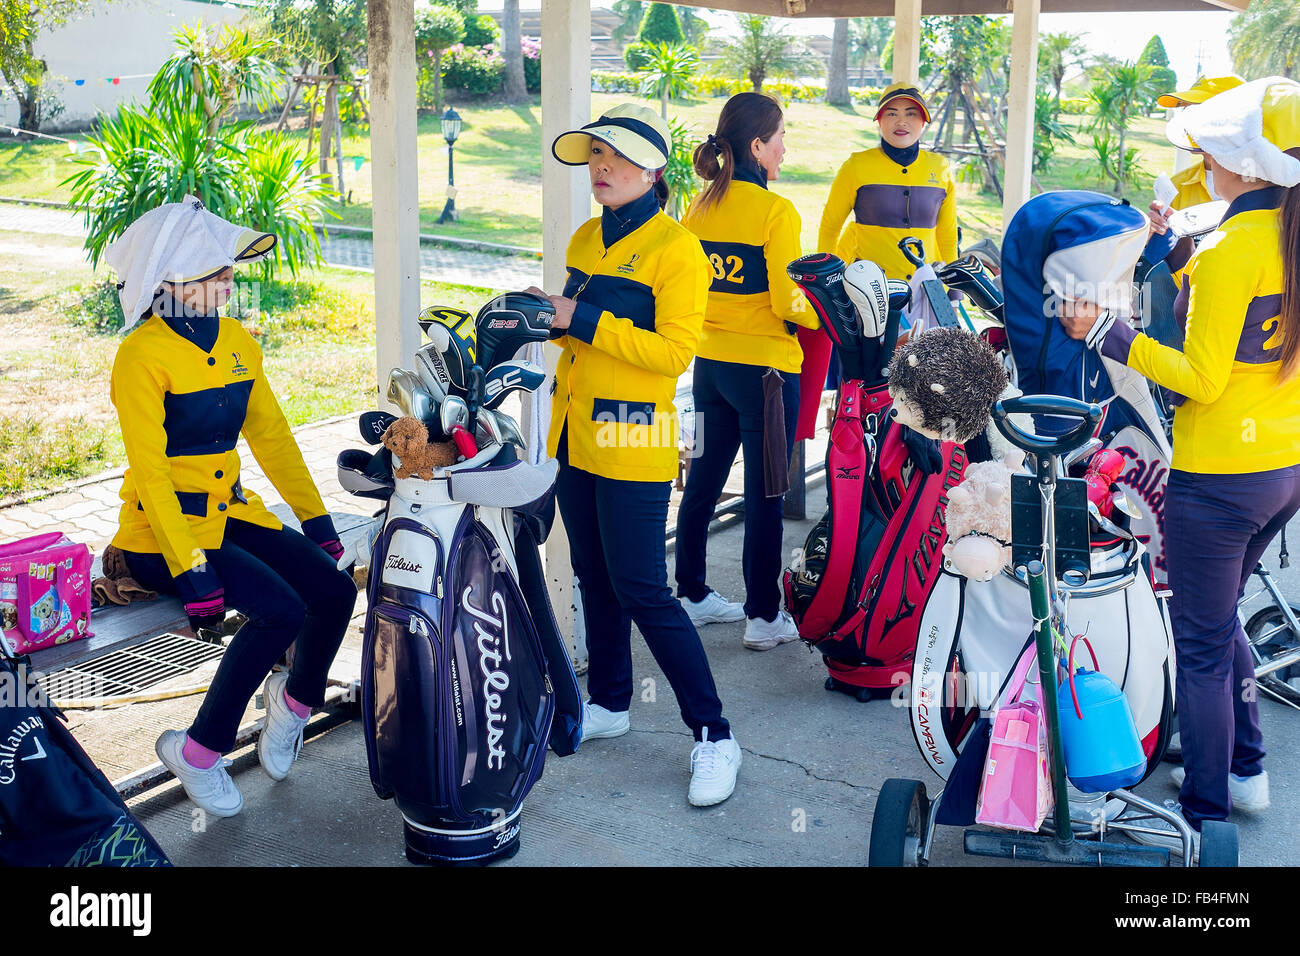 Ayuthaya, Thailand - December 27, 2015 : Caddie girls waiting for tee off time - Stock Image